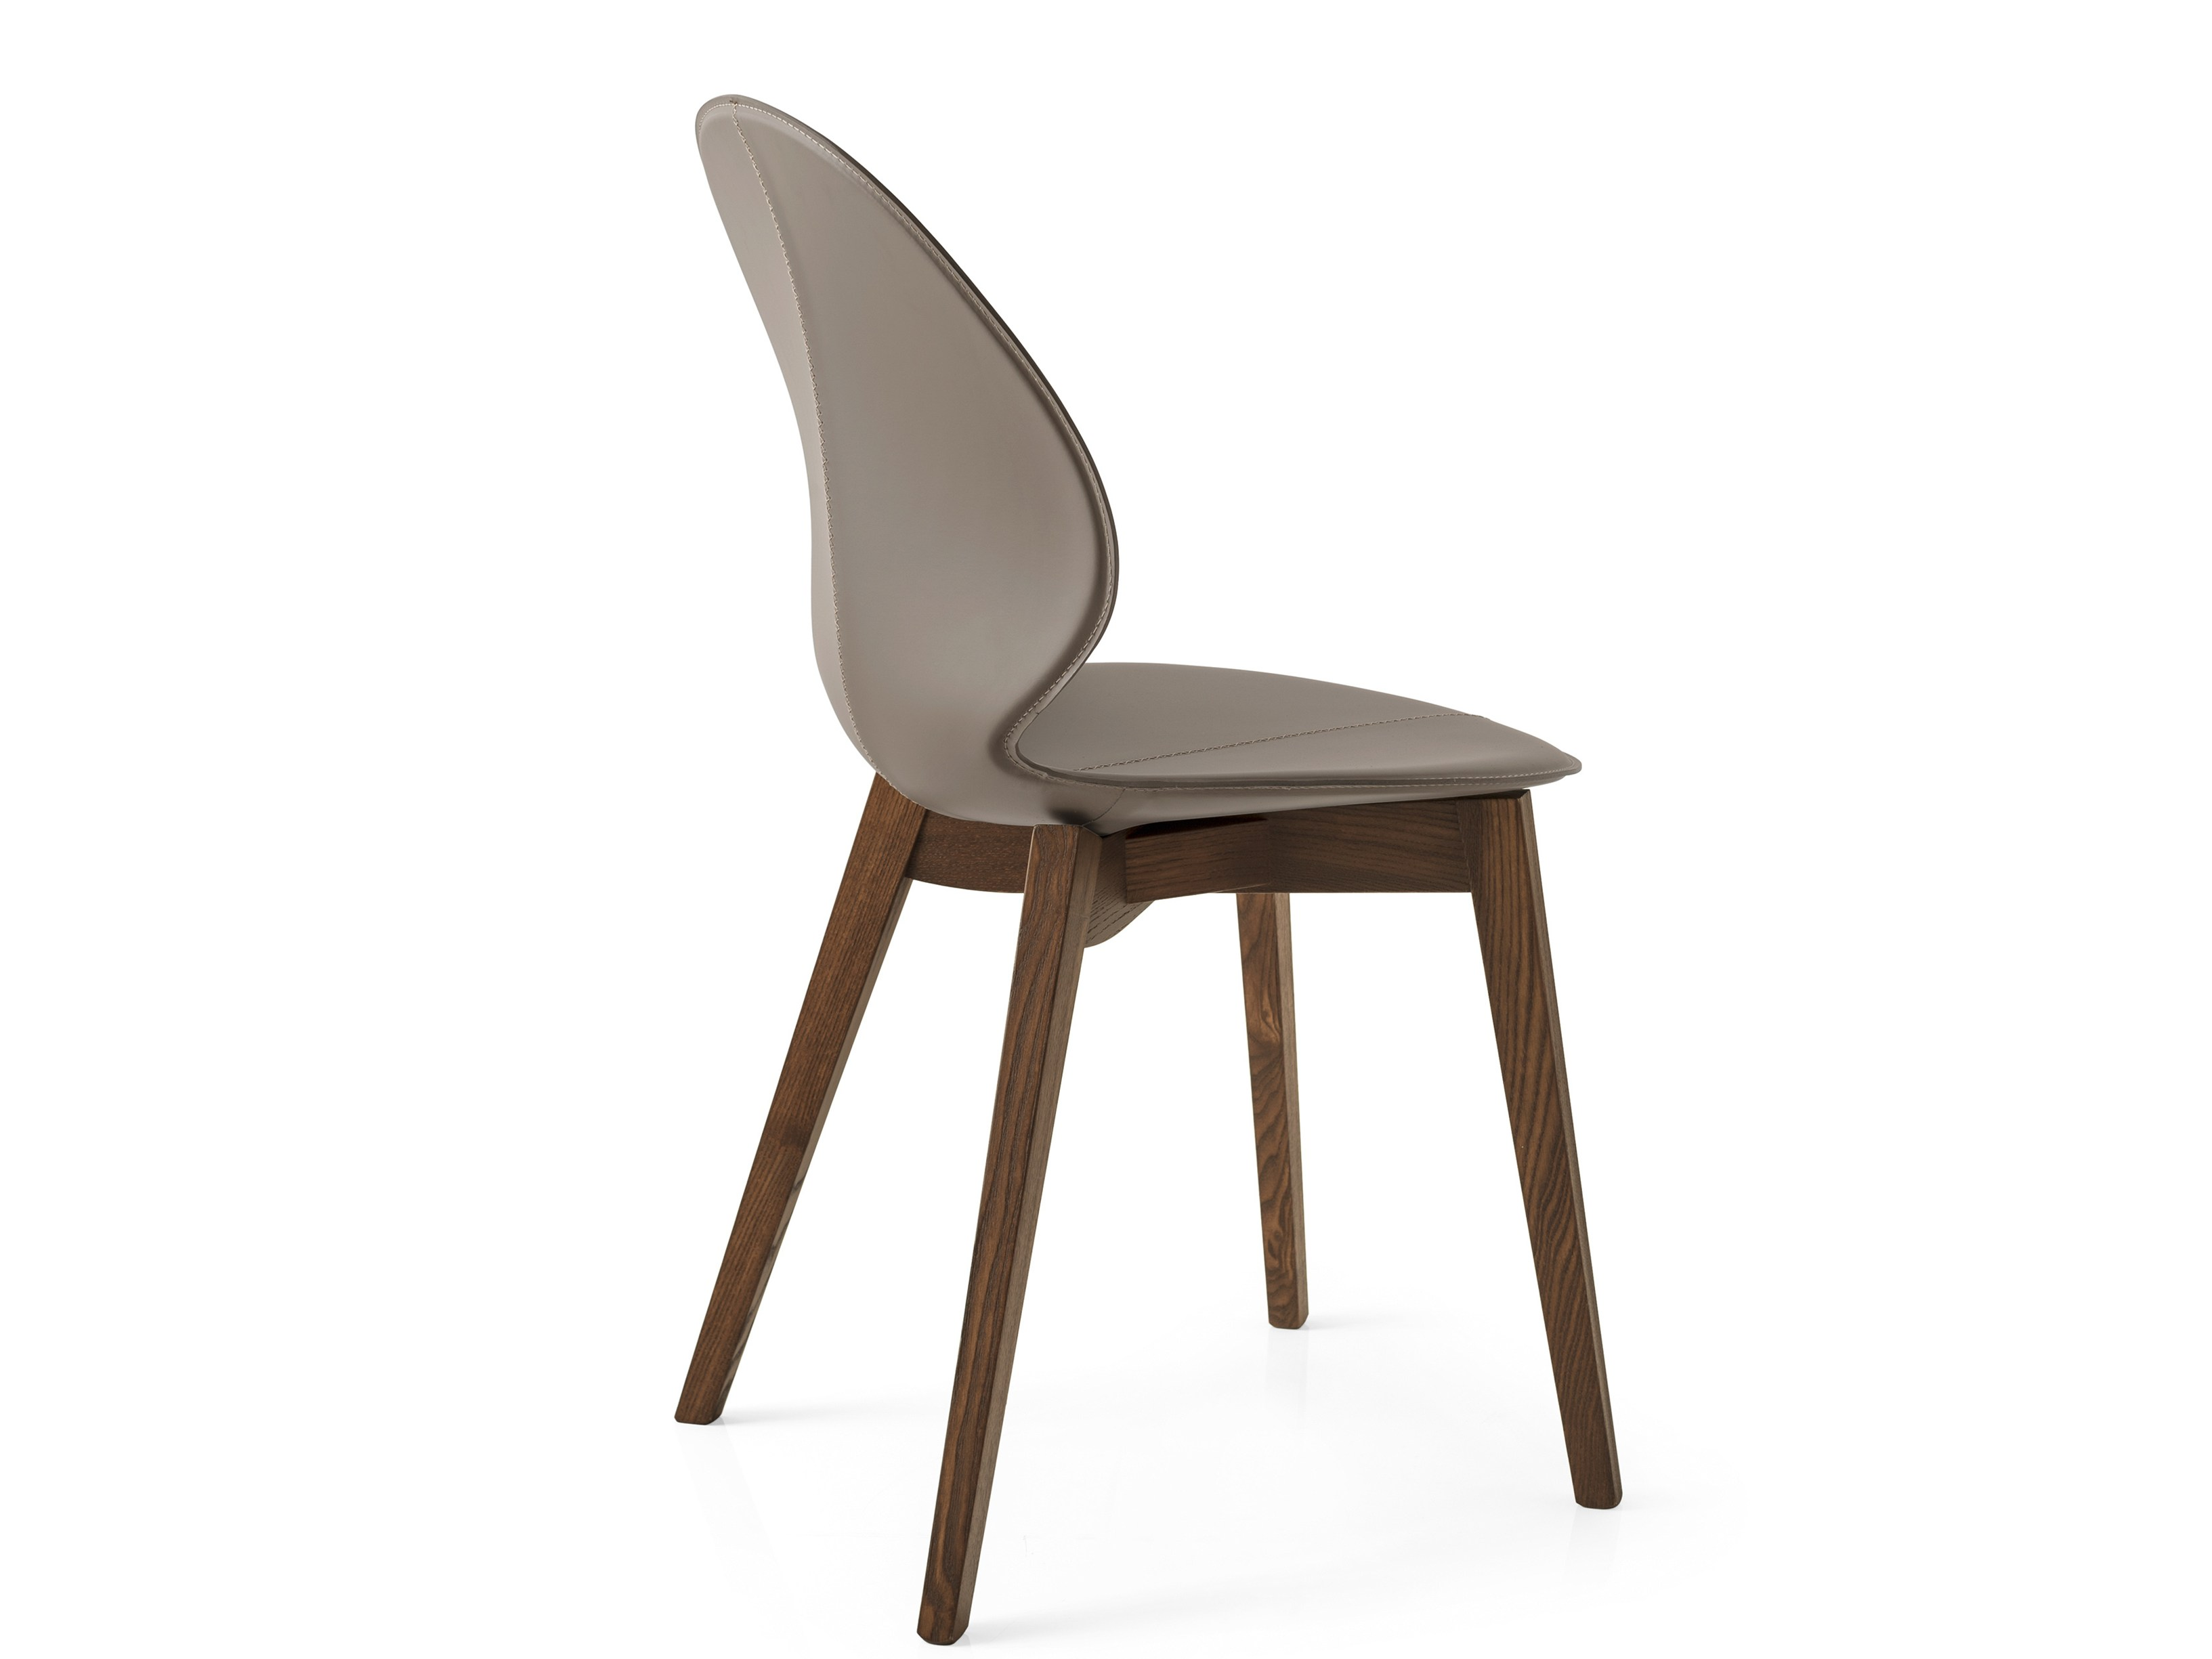 Upholstered tanned leather chair basil w by calligaris for Calligaris sedie